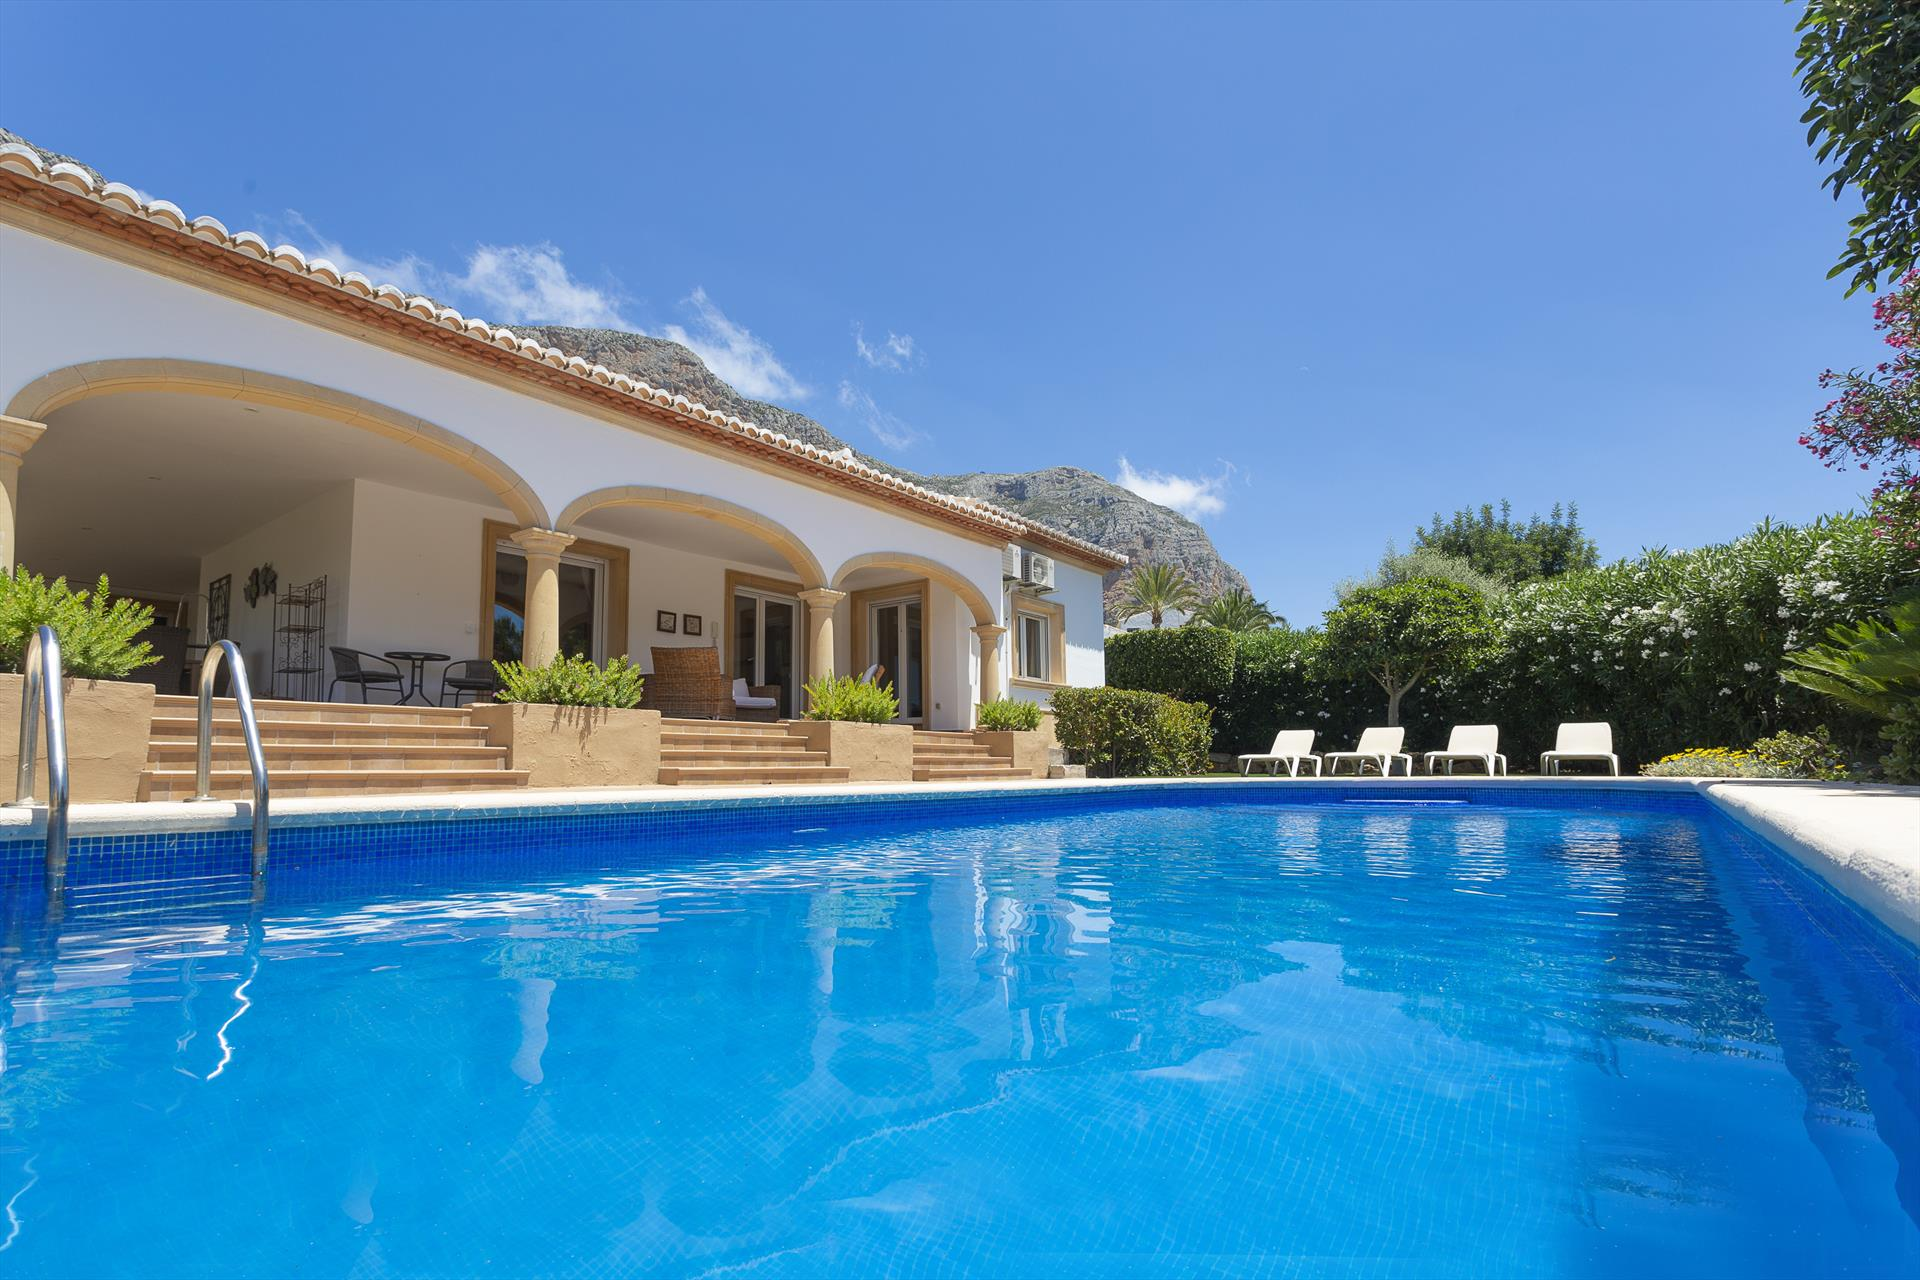 Casa Dory LT, Lovely holiday villa for 10 people in Javea with private pool and beautiful views of the Montgo mountain and the valley.This.....